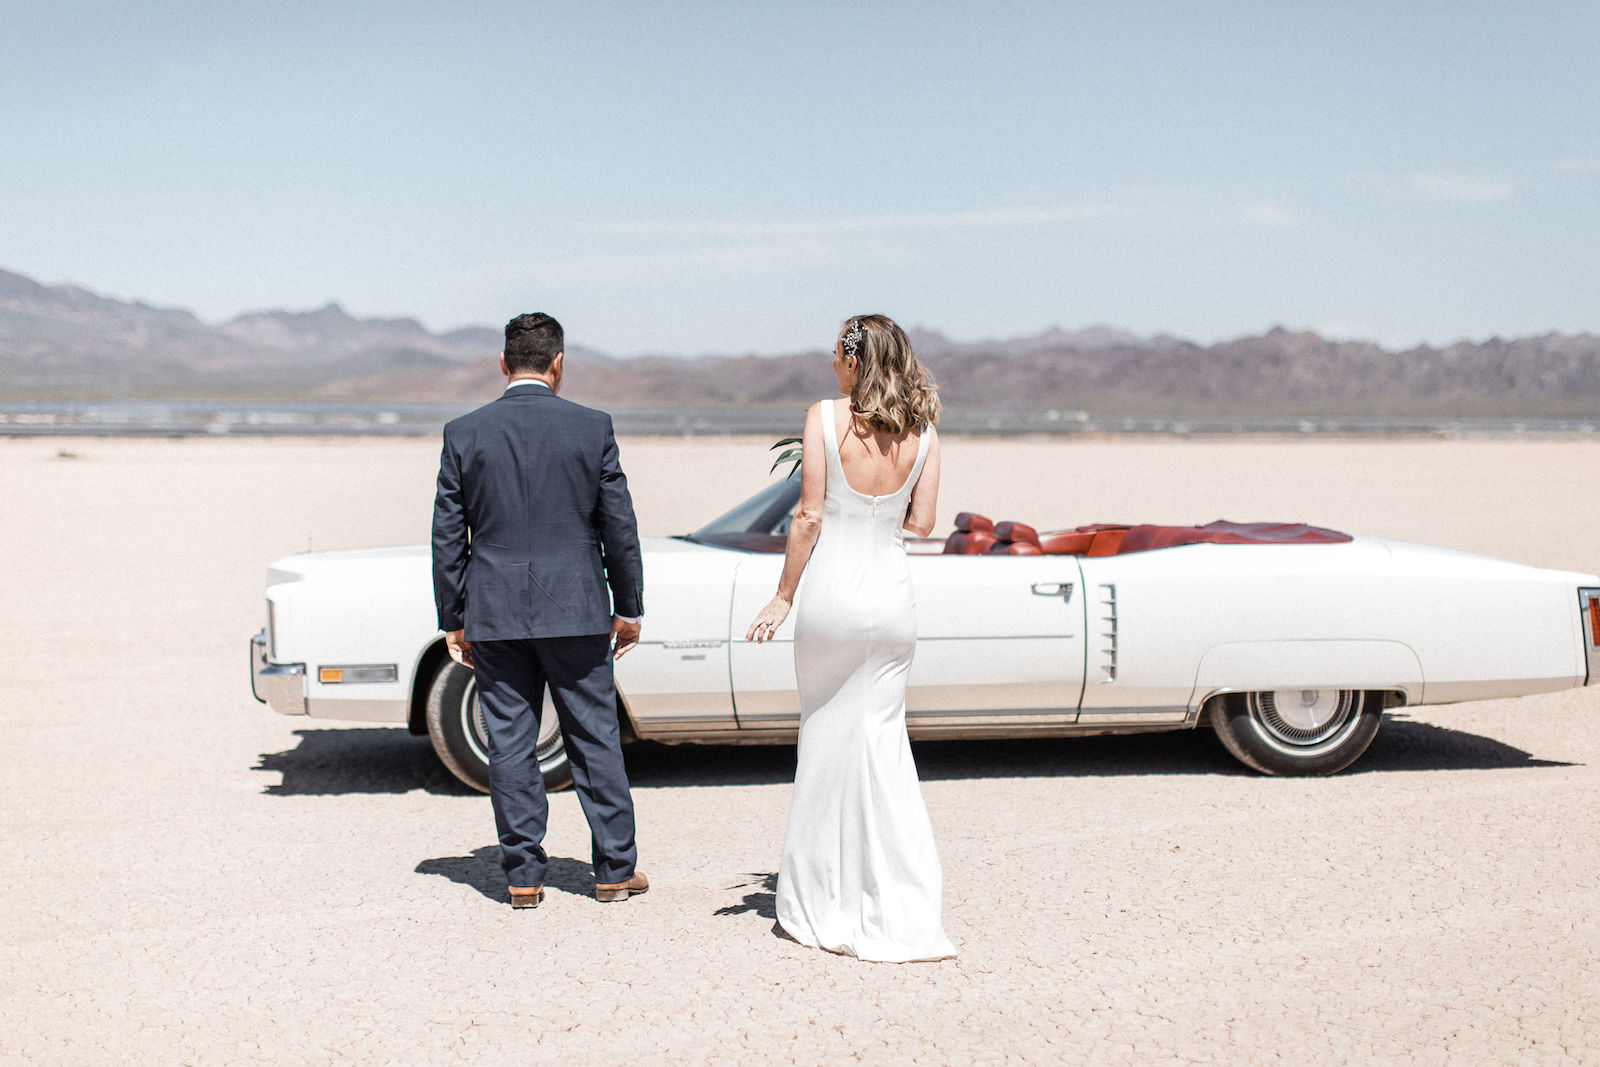 cadillac convertible dry lake bed elopement 00002.jpg